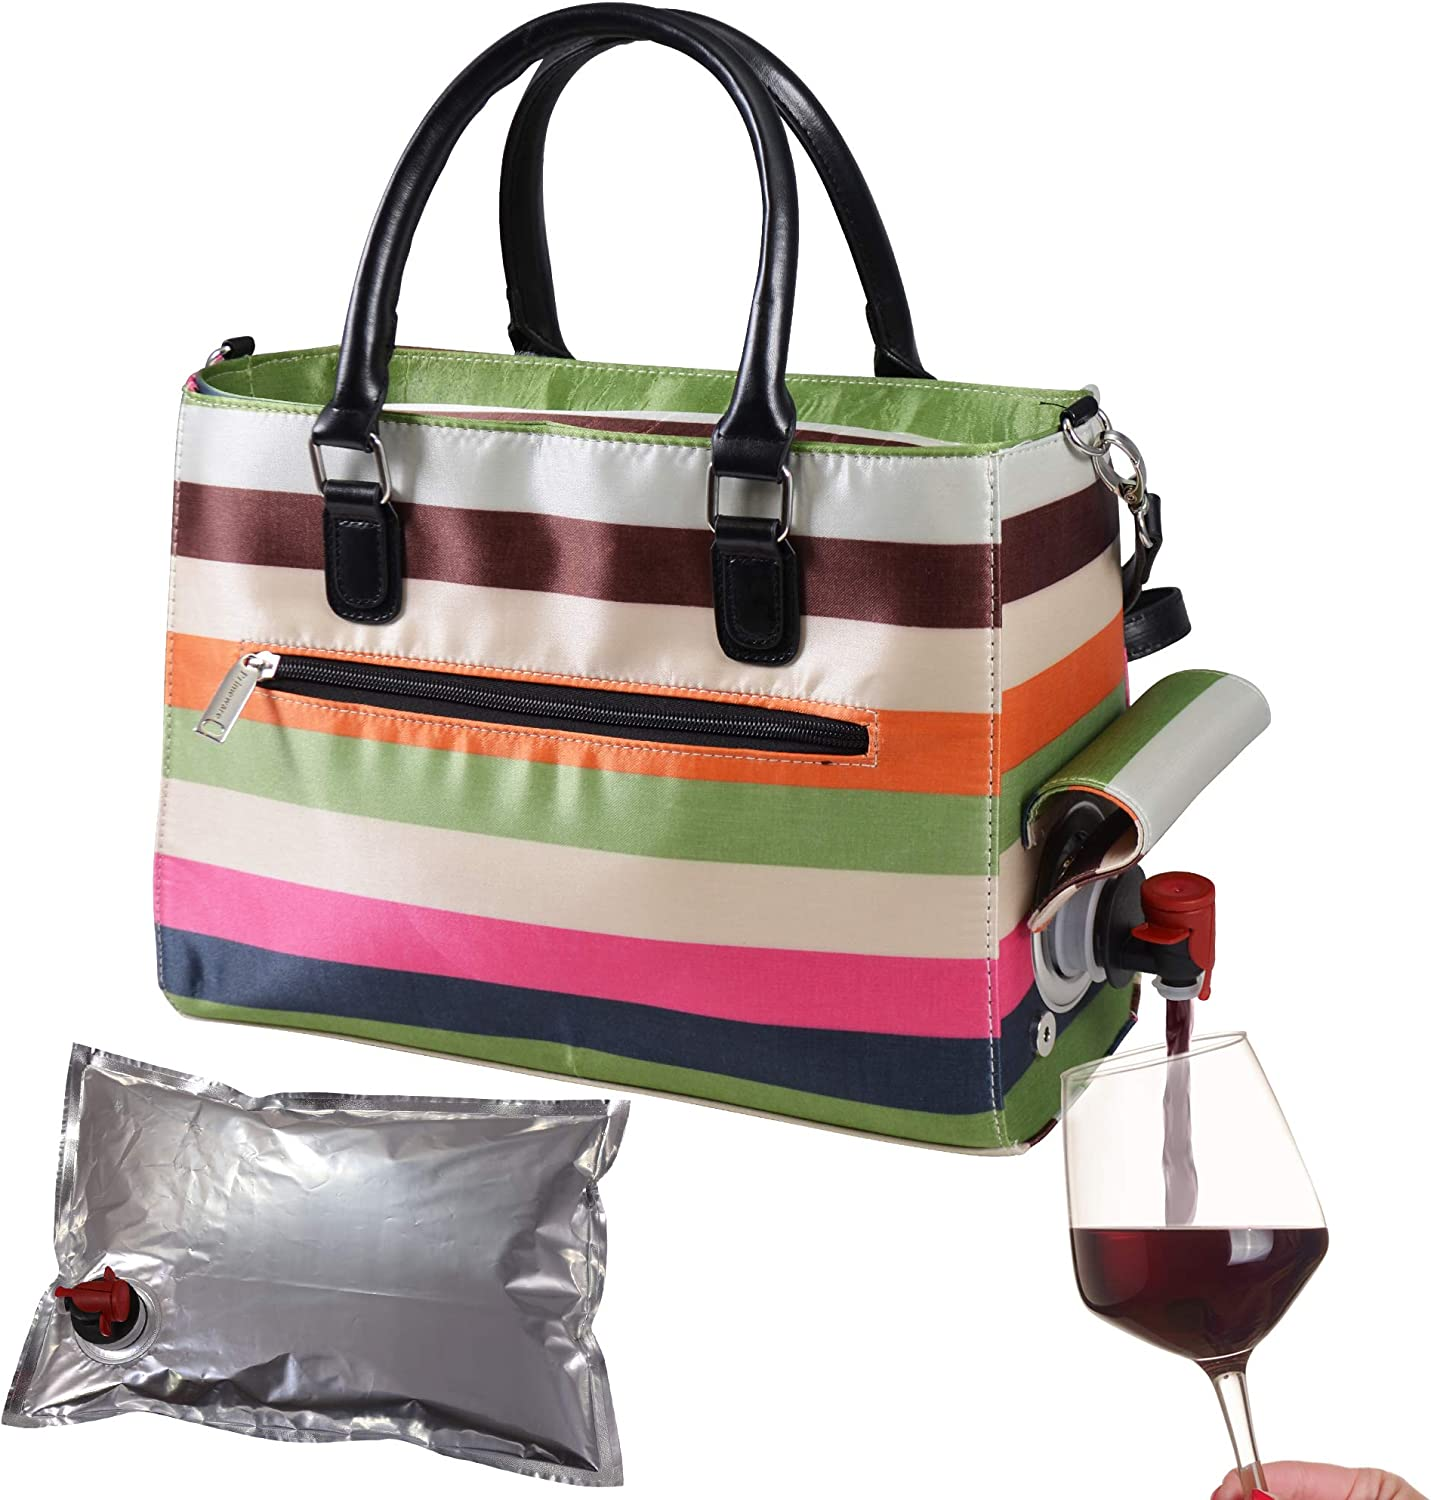 Primeware Insulated Drink Purse w/ 3L Bladder Bag | Thermal Hot and Cold Storage | Portable Drinking Dispenser for Wine, Cocktails, Beer, Alcohol | PU Leather Finish (Stripe)